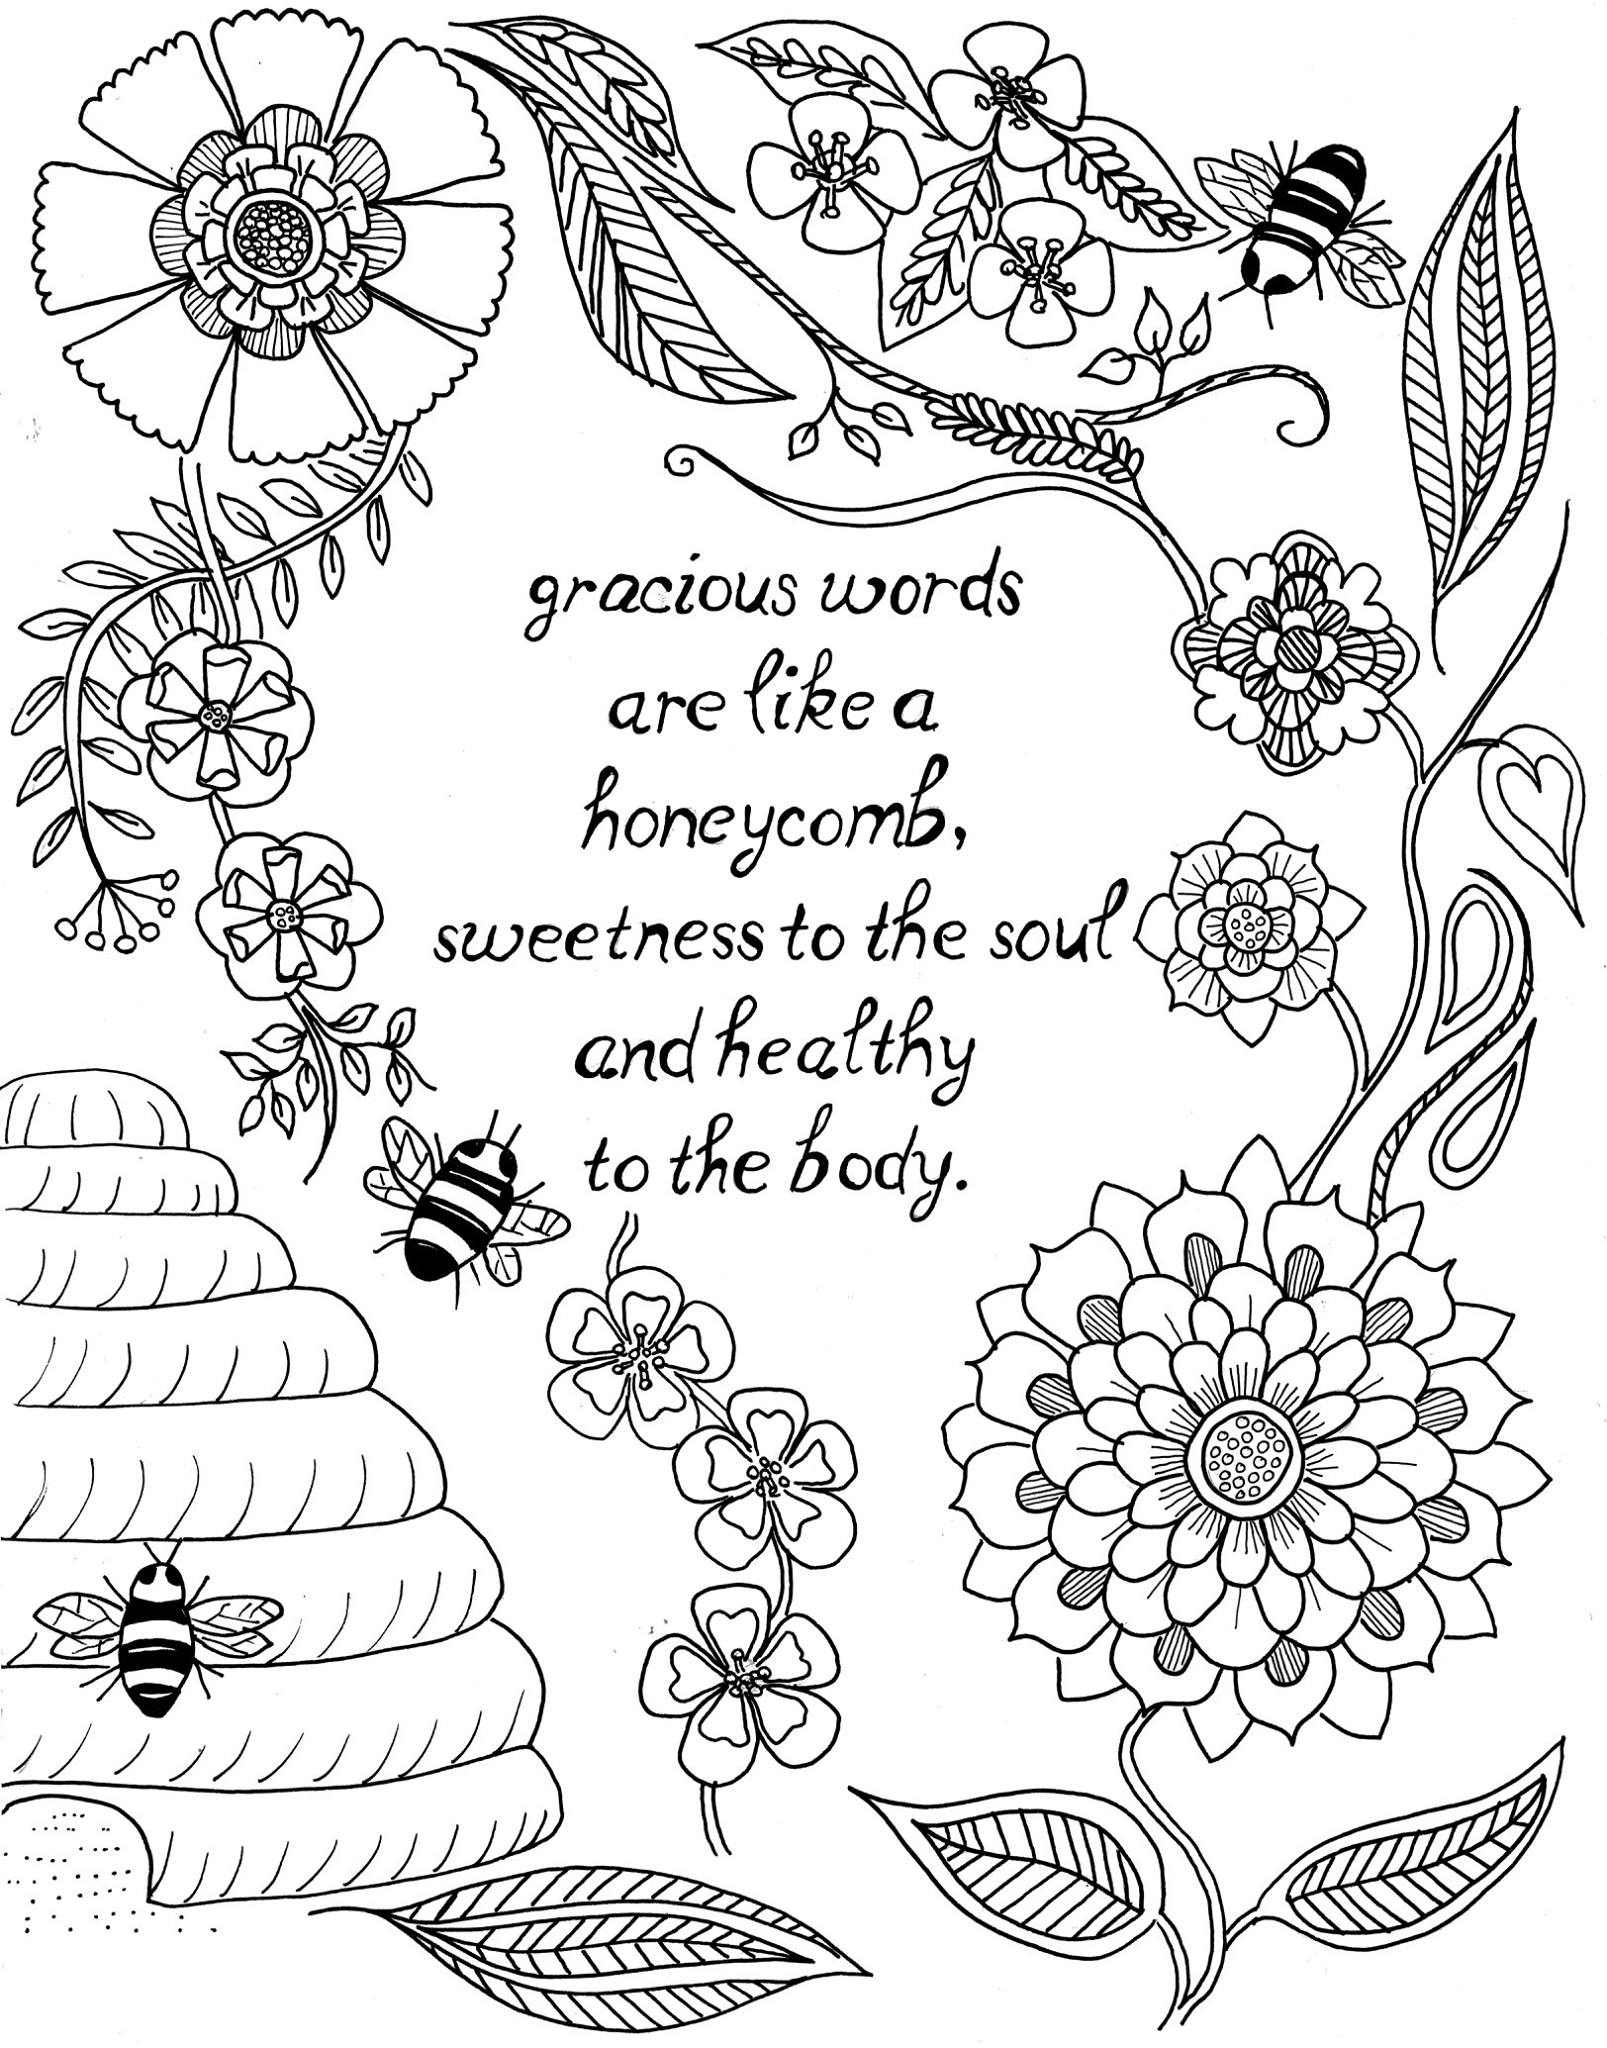 Coloring pages download - Inspirational Coloring Pages